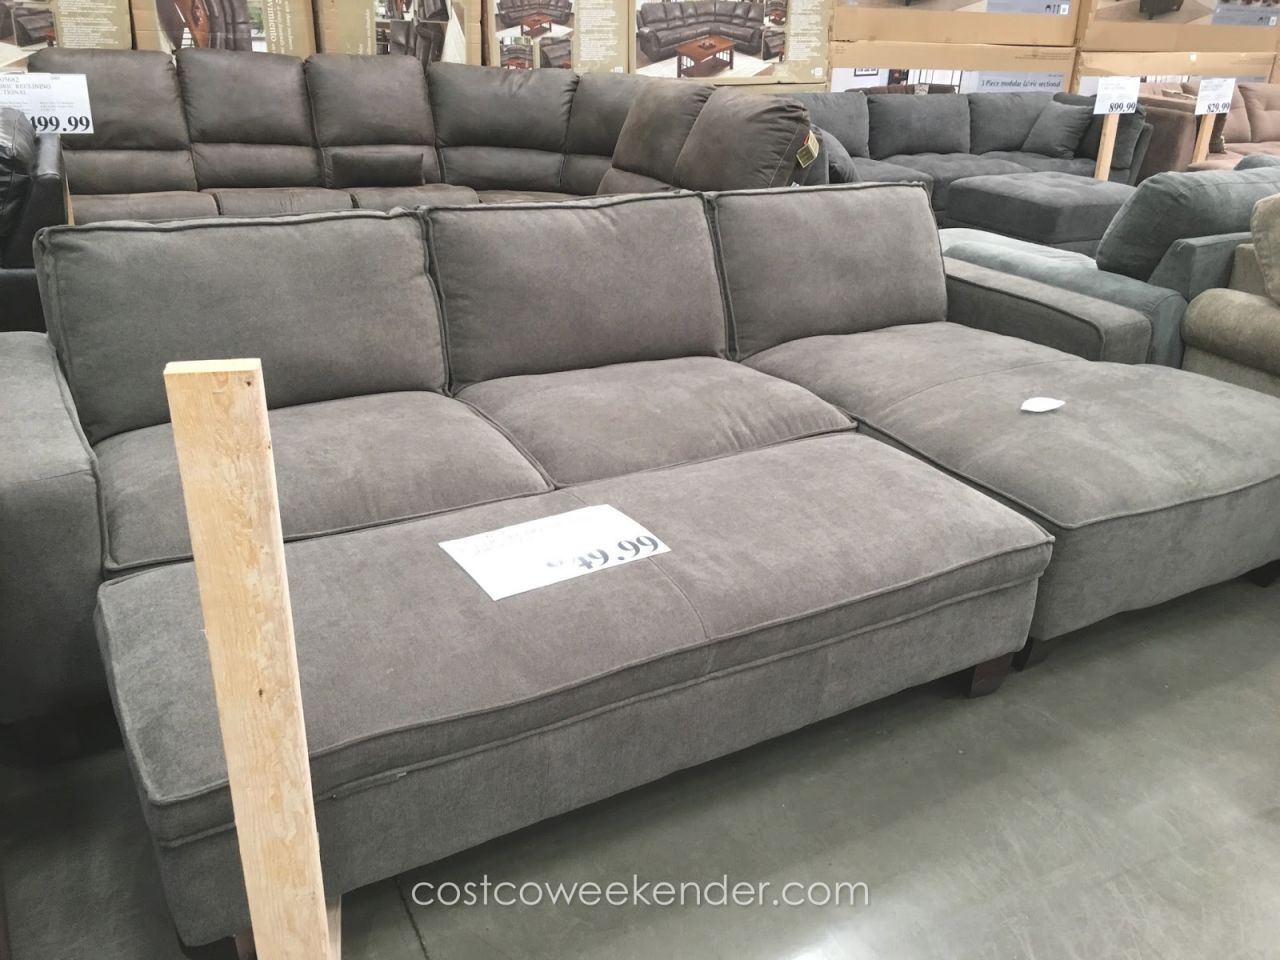 Engaging Sofa Bed Costco Reddit Full Scenic Feather Leather Intended For Lovely Costco Living Room Furniture Awesome Decors